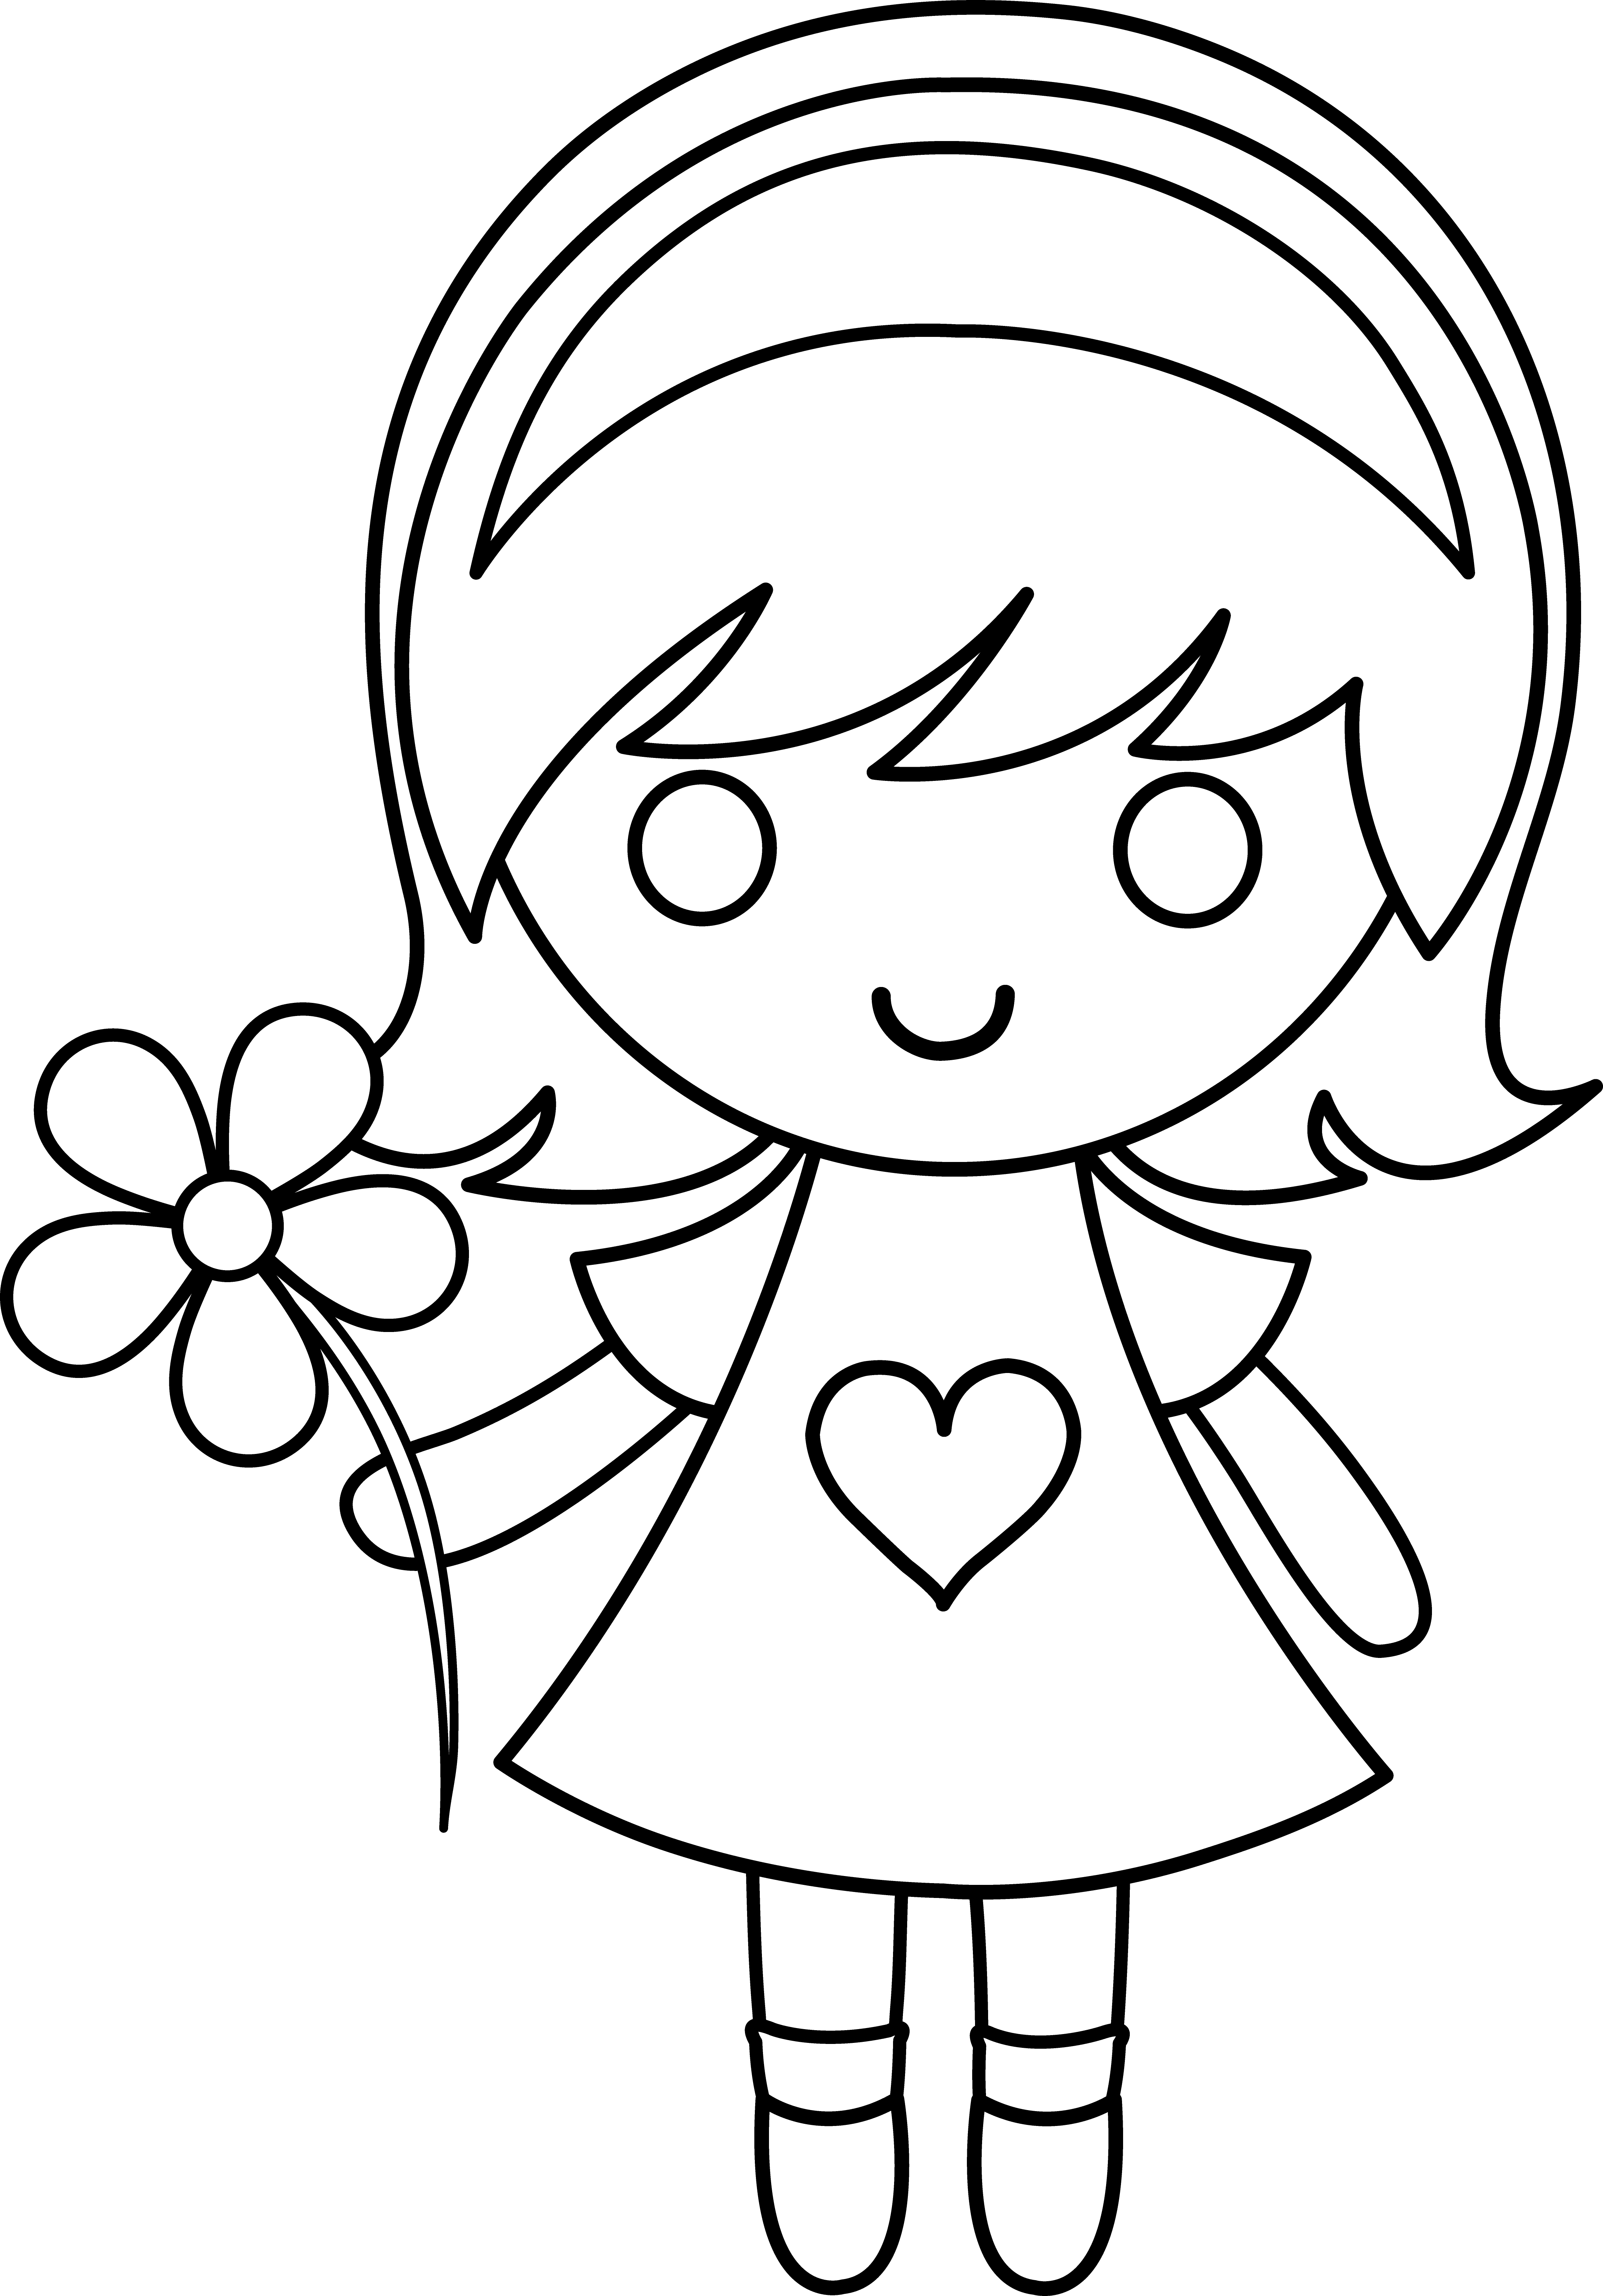 clip art coloring pages daisy girl colorable line art free clip art pages art clip coloring